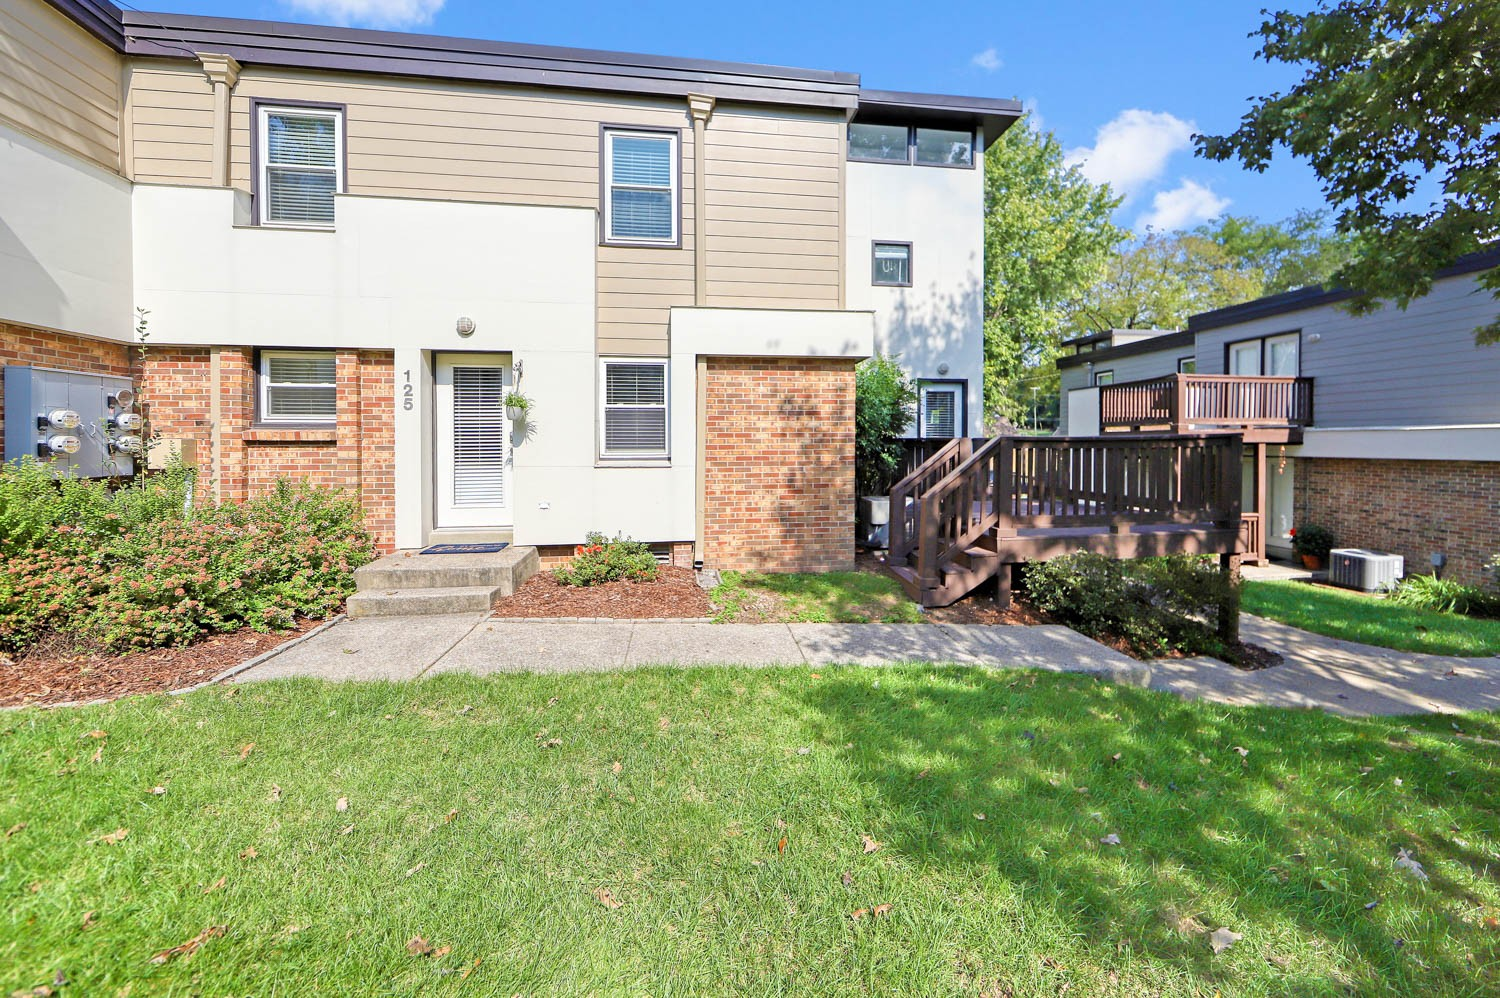 Prime Location!  This spacious townhome offers Contemporary Comfort and Convenience to 12 South, Lipscomb, Belmont, Vandy & Downtown!  Walk to Sevier Park, Shopping/Dining.  Desirable unit w/large deck overlooking greenspace. Main level Open Concept-Many Updates: hardwoods, Kitchen & Baths w/Granite, Stainless Appliances & Fixtures.  Large EnSuite w/Amazing Glam Bath Flooded w/High, Natural Light, Step-up Jacuzzi Tub & Separate Shower, Walk-In Closet w/Built-Ins. Refrigerator, Washer/Dryer Incl.